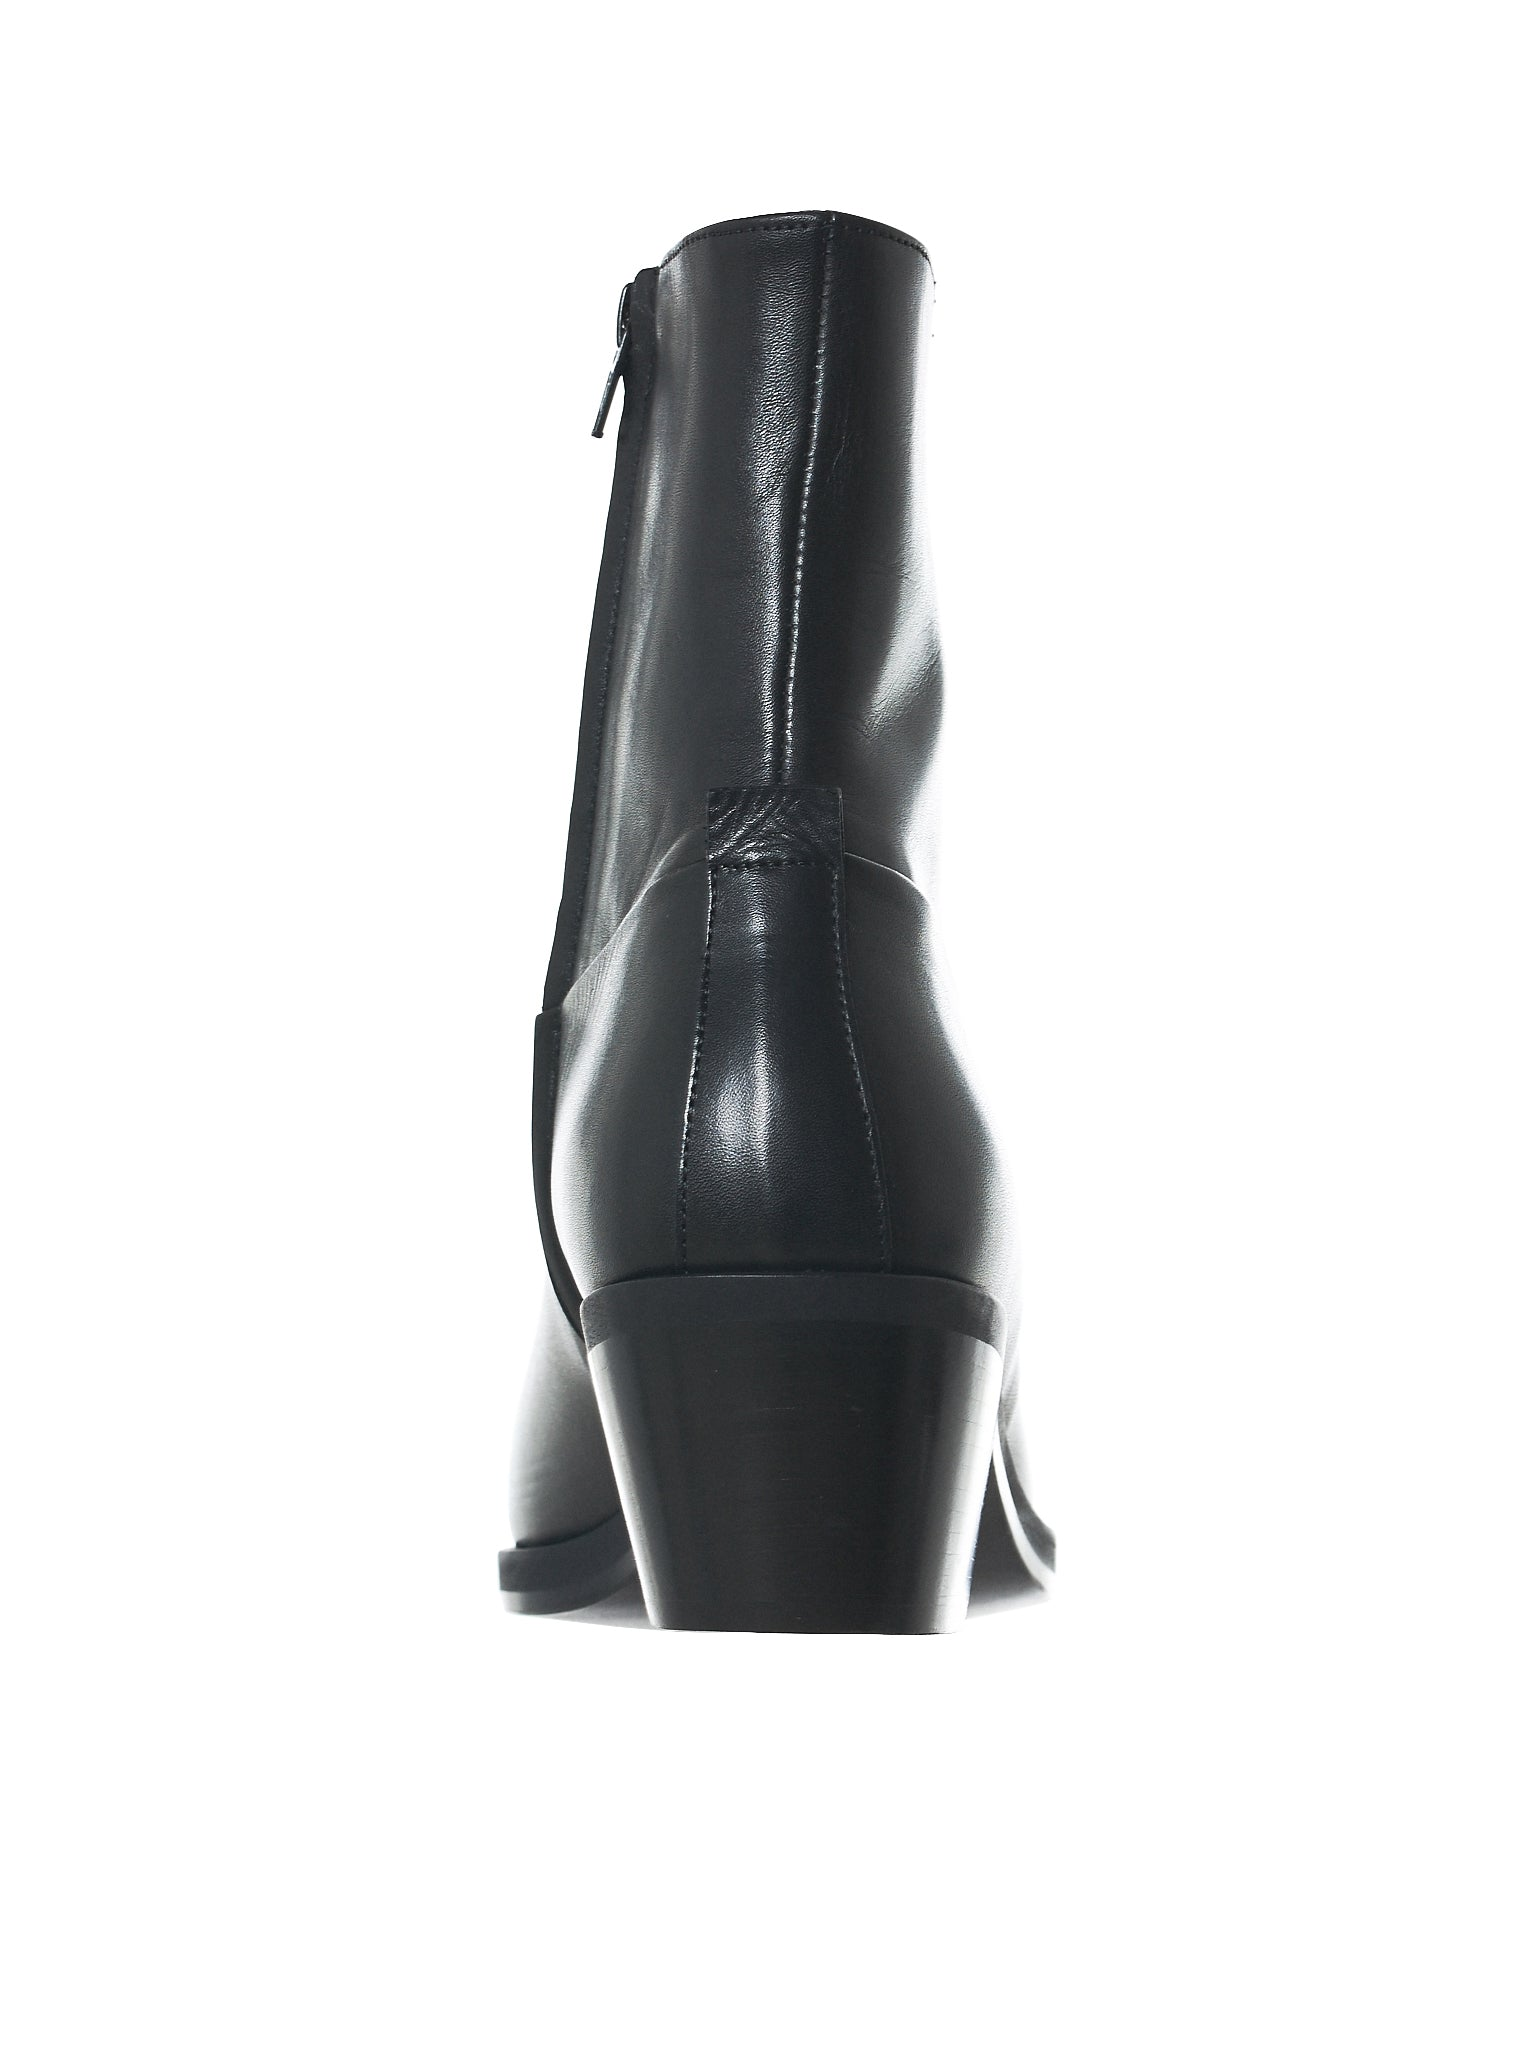 MISBHV Leather Boots - Hlorenzo Detail 1